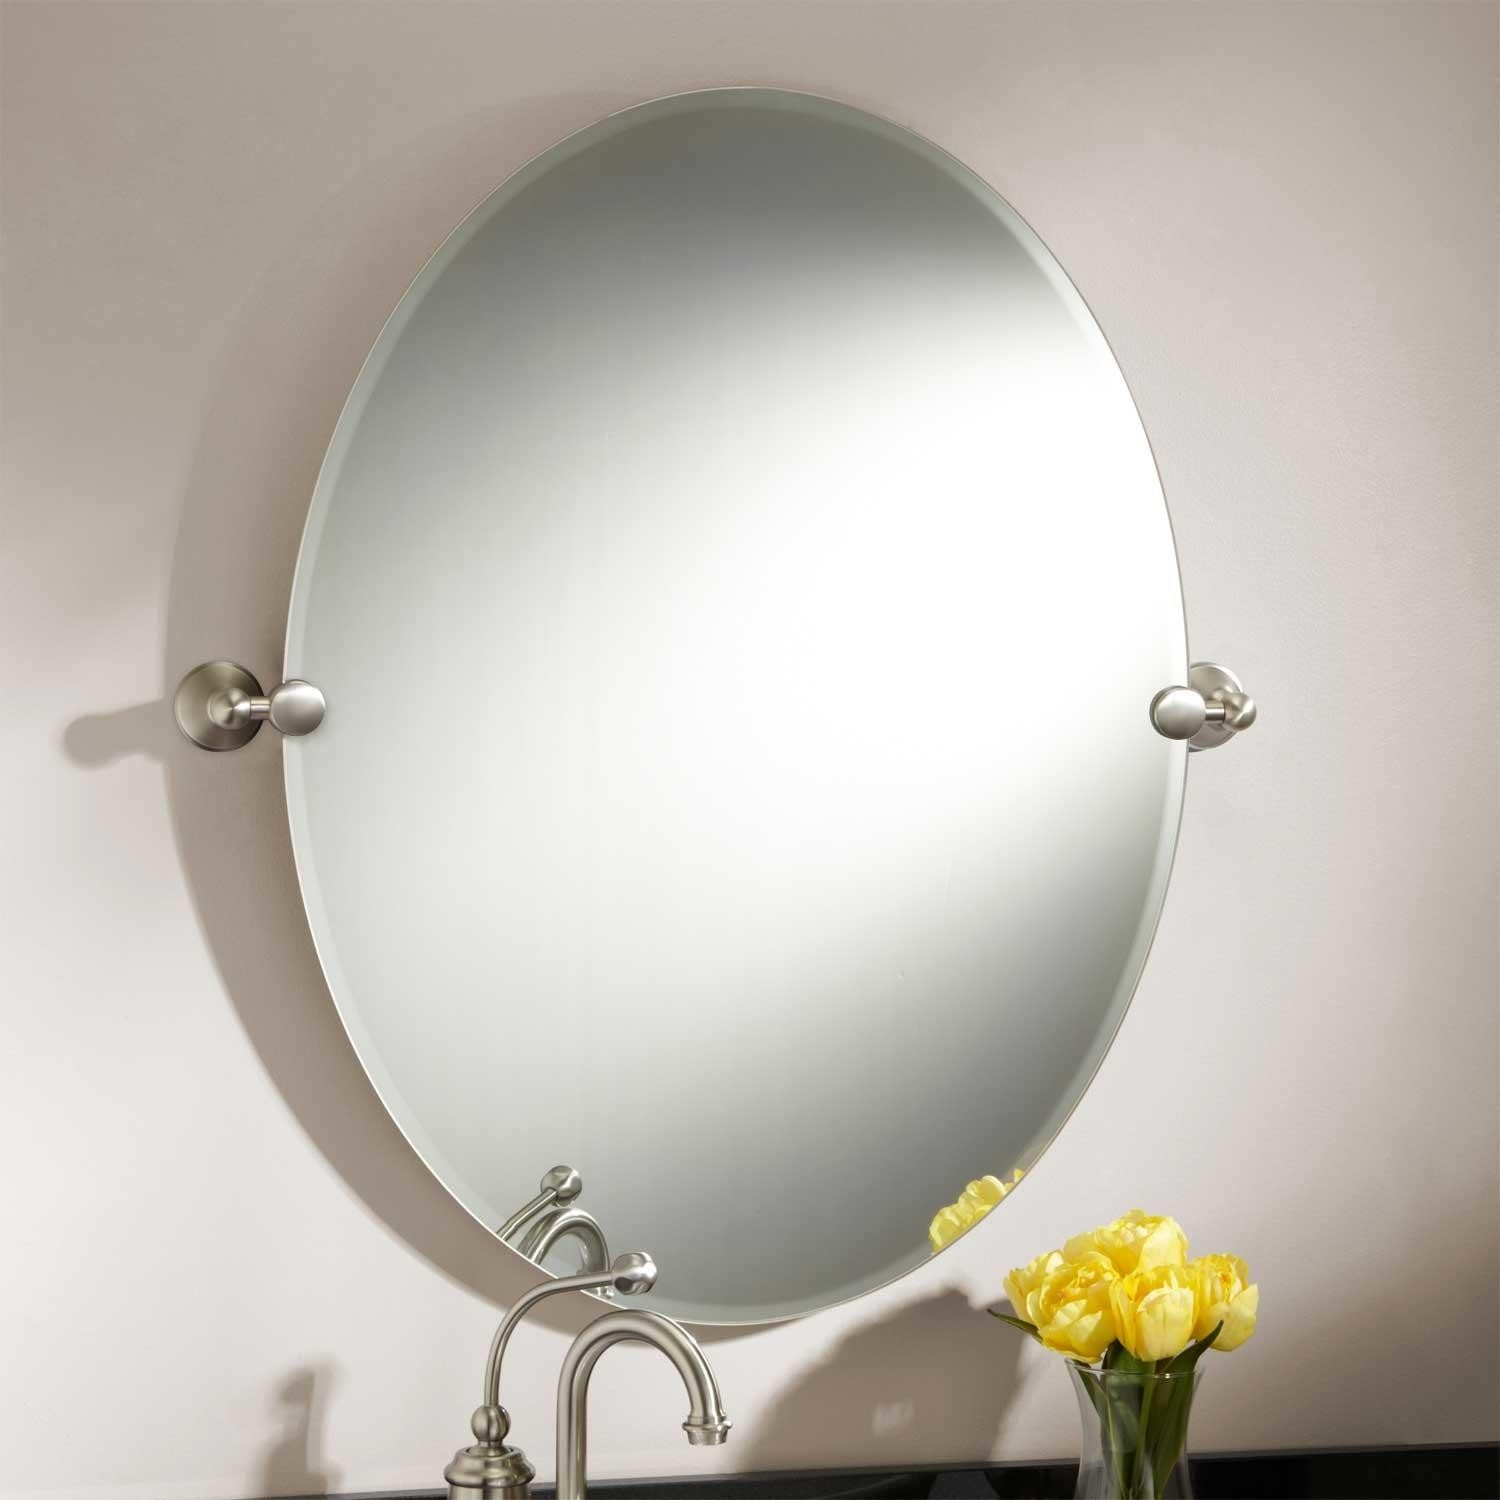 Bathroom Oval Mirror Brushed Nickel